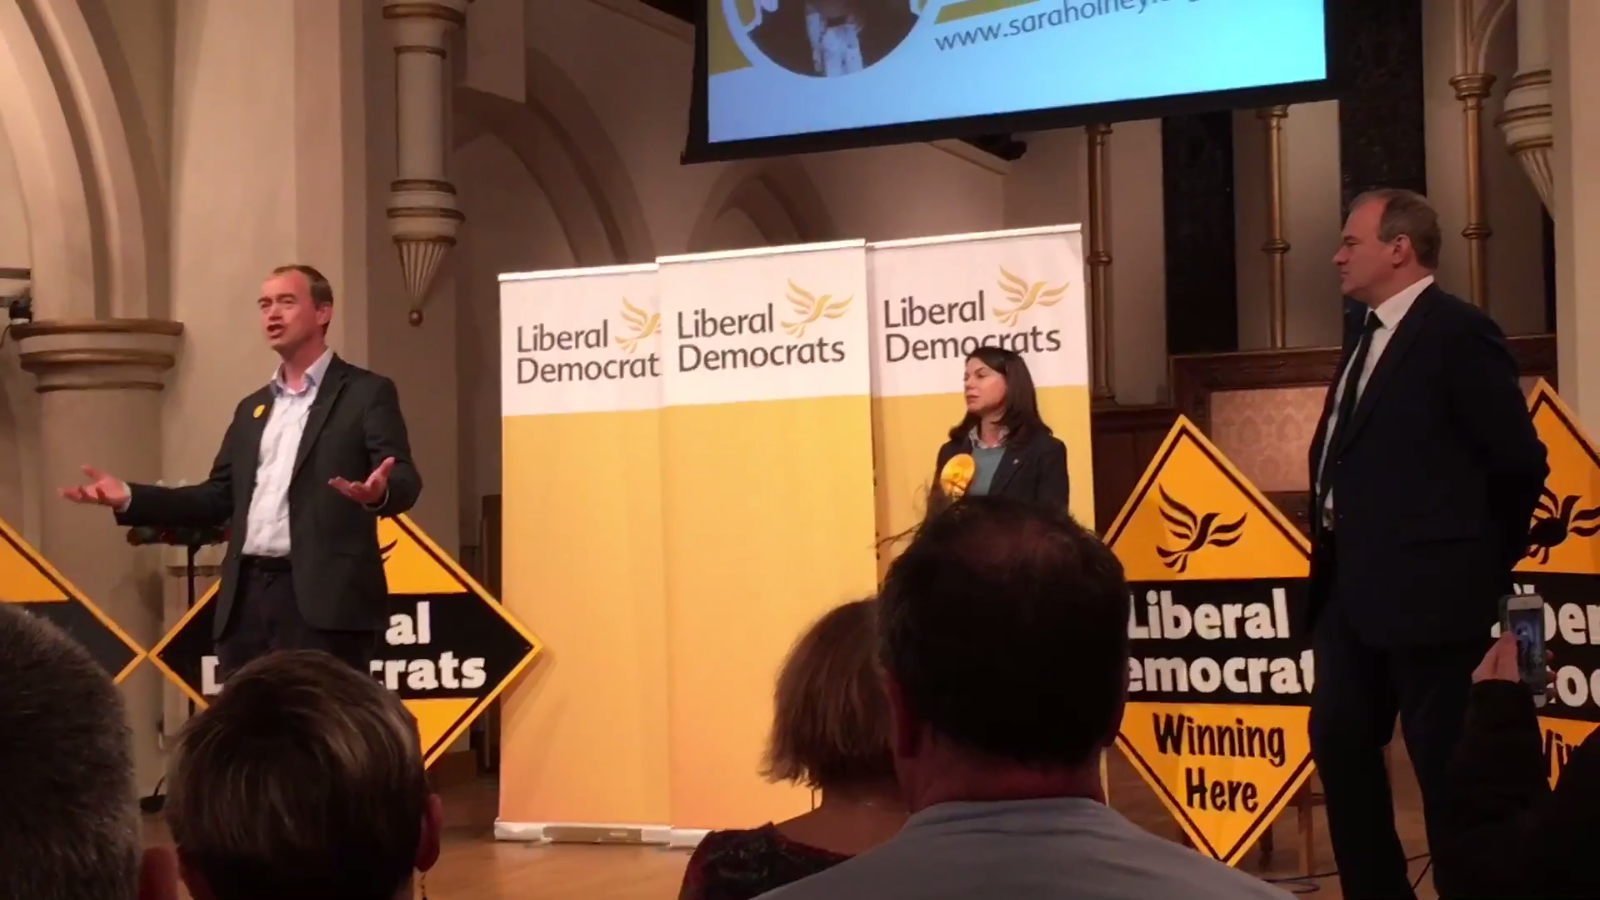 Lib Dem leader Tim Farron speaking to an audience with Richmond Park candidate Sarah Olney and former minister Ed Davey